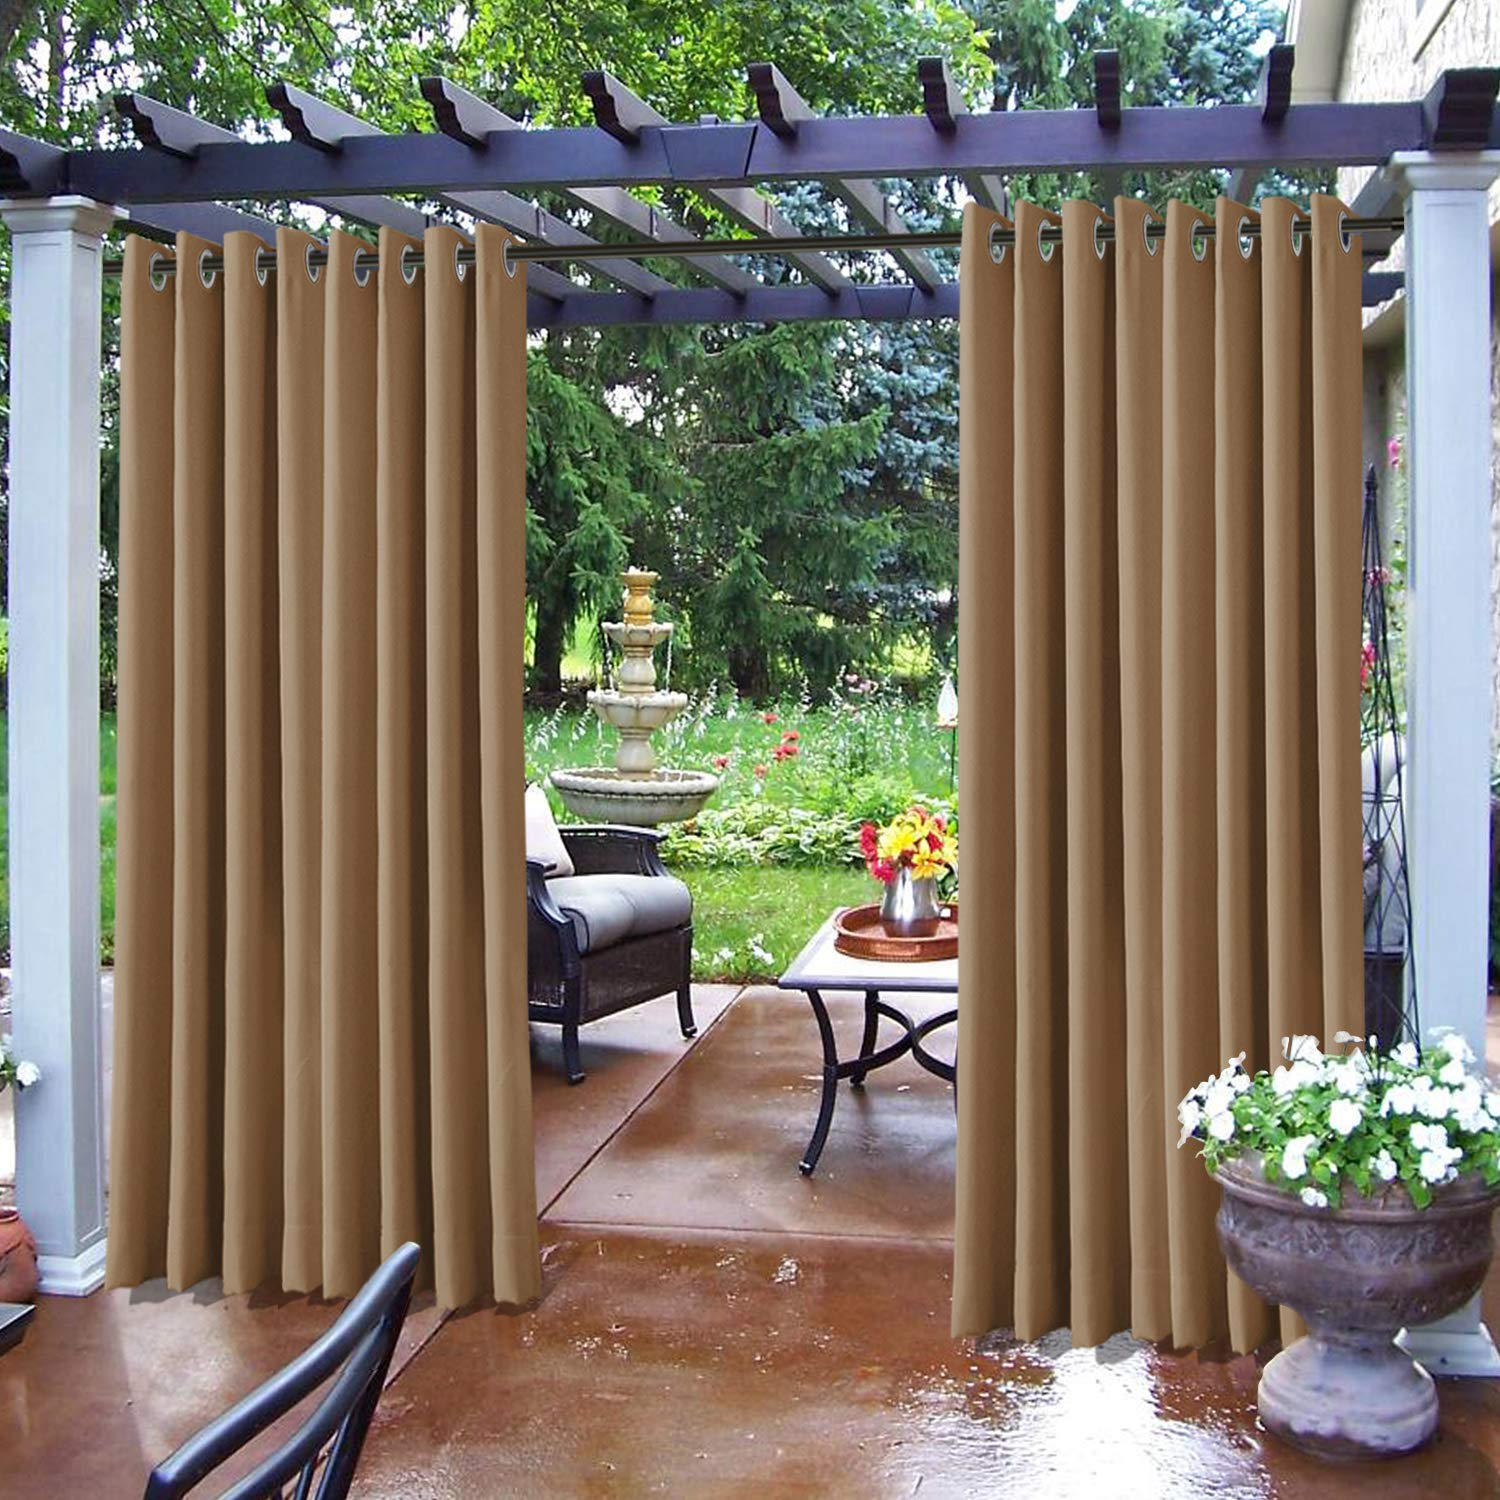 frelement outdoor curtains for patio indoor outdoor decoration water repellent heat insulated outside drapes for gazebo dock wheat 100w x 84l 1